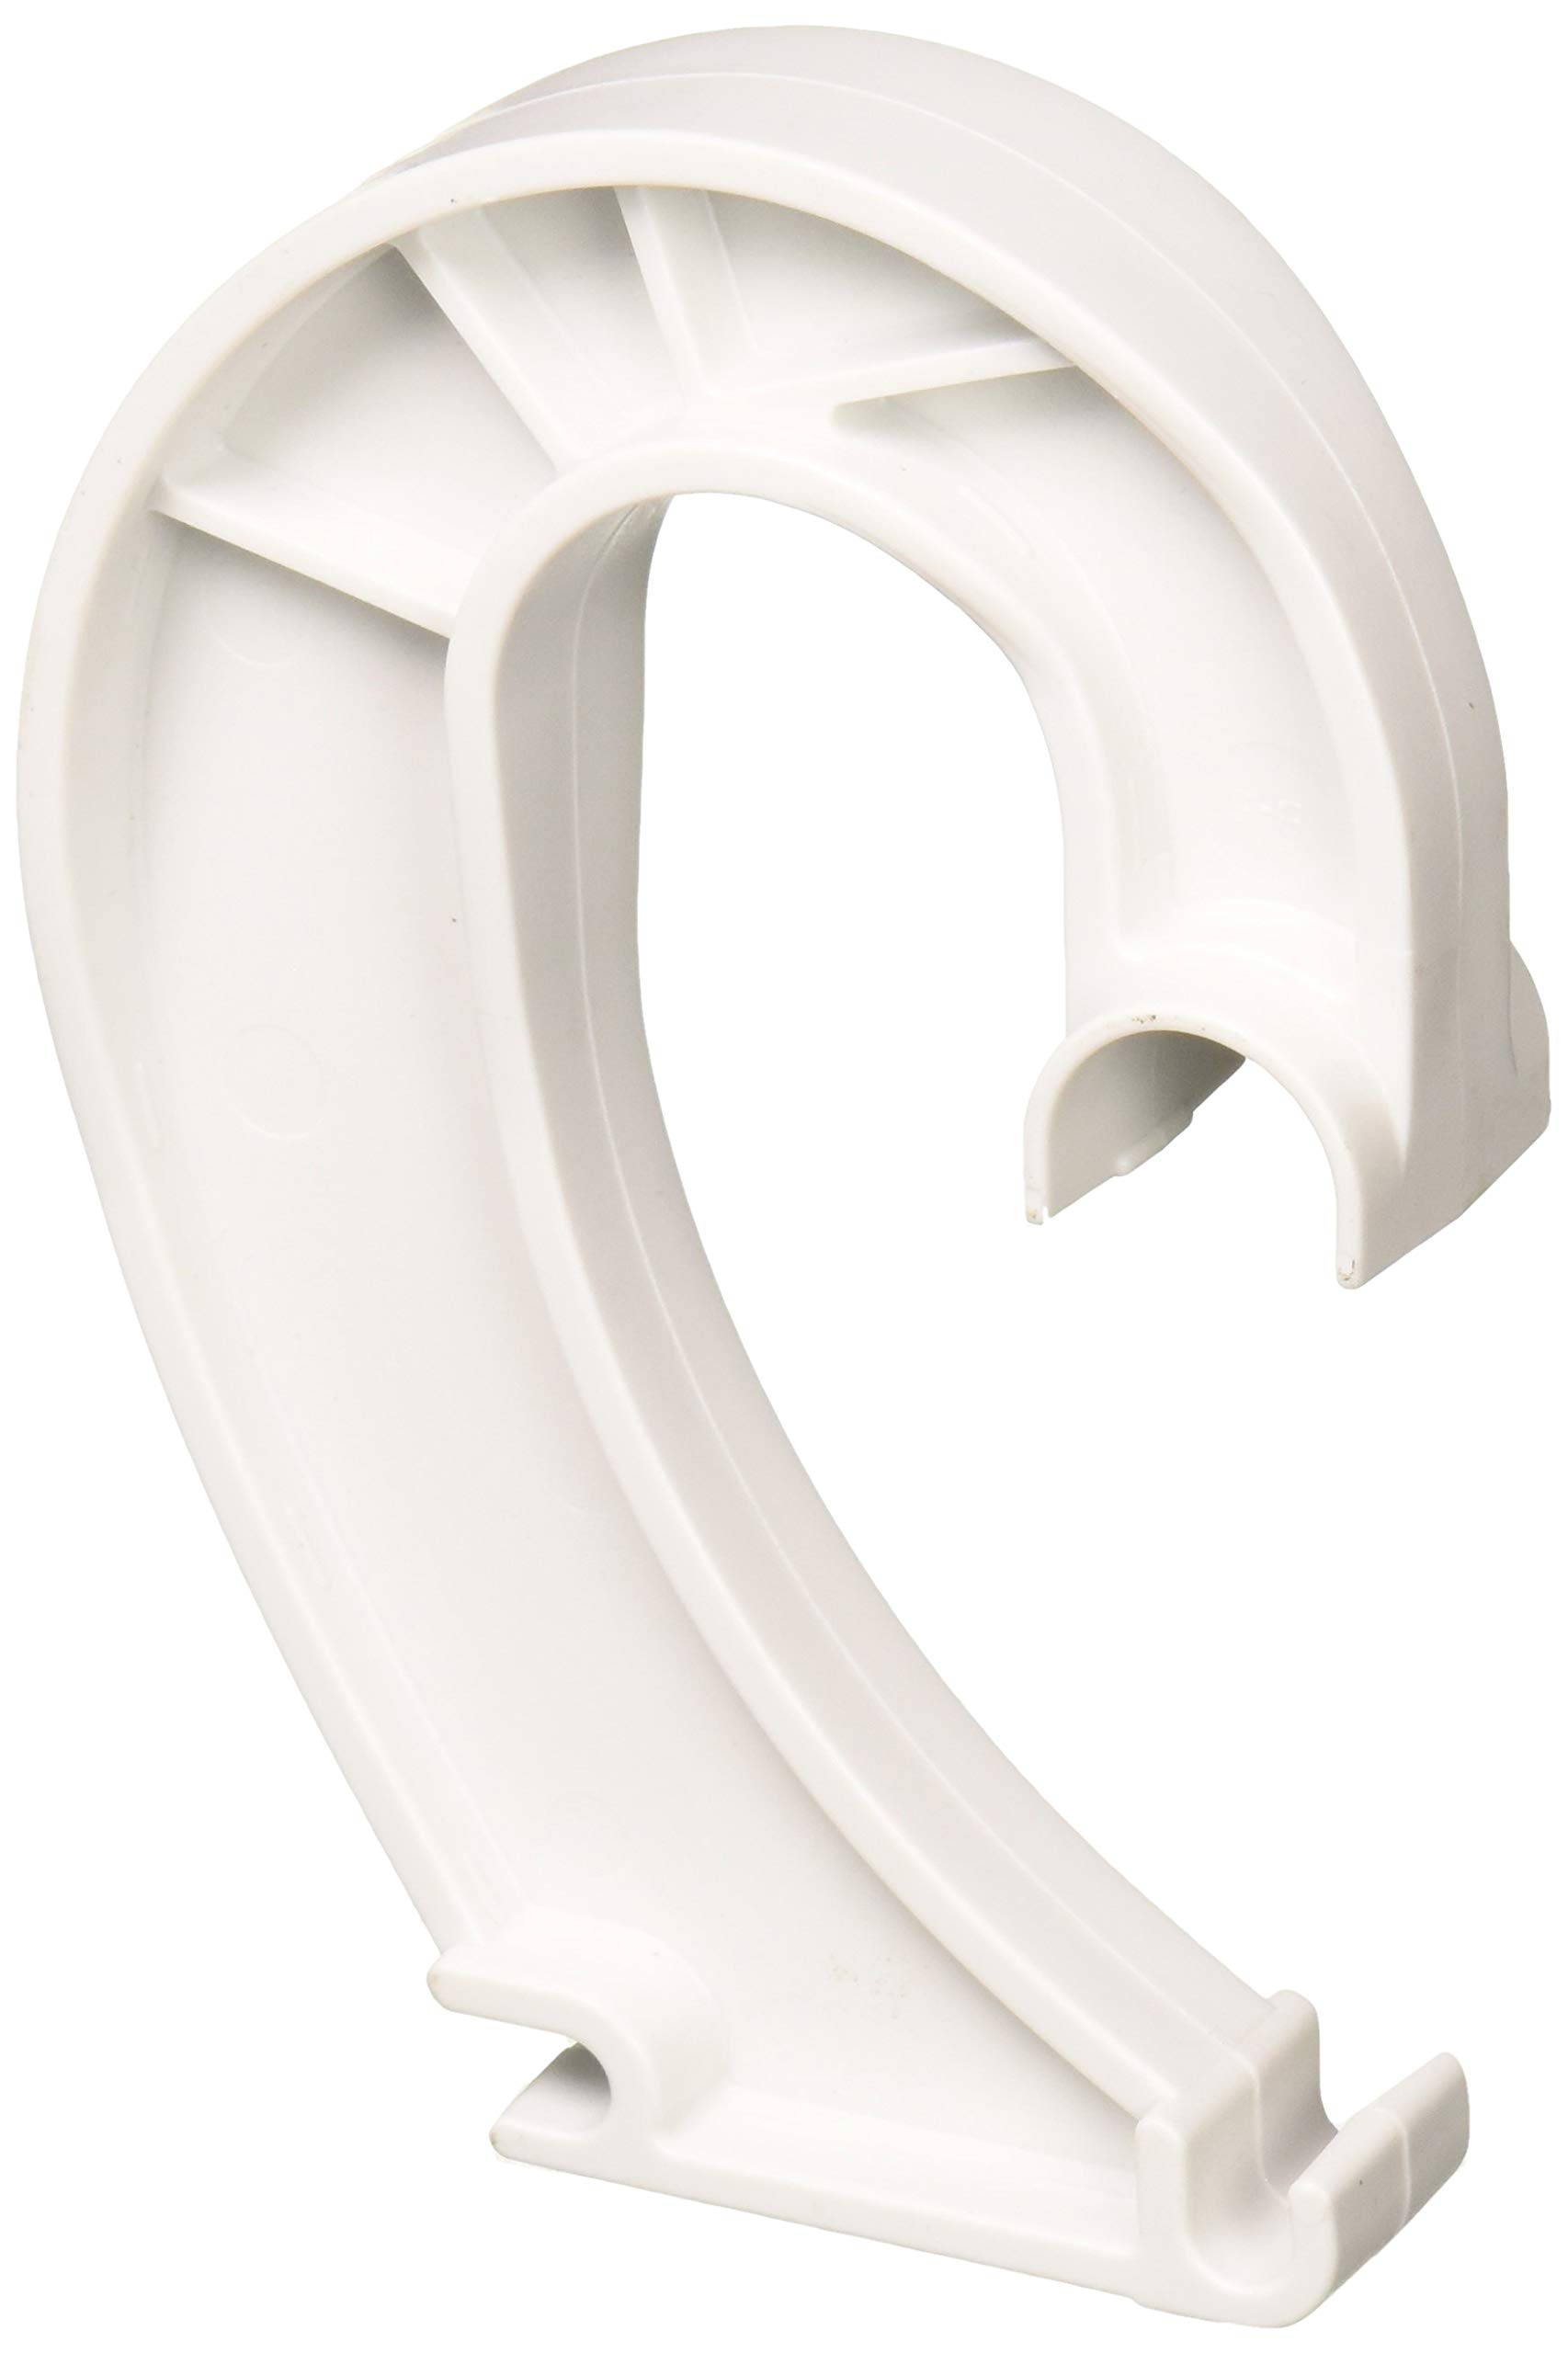 ClosetMaid 5629 Support for SuperSlide Hanging Bar, White